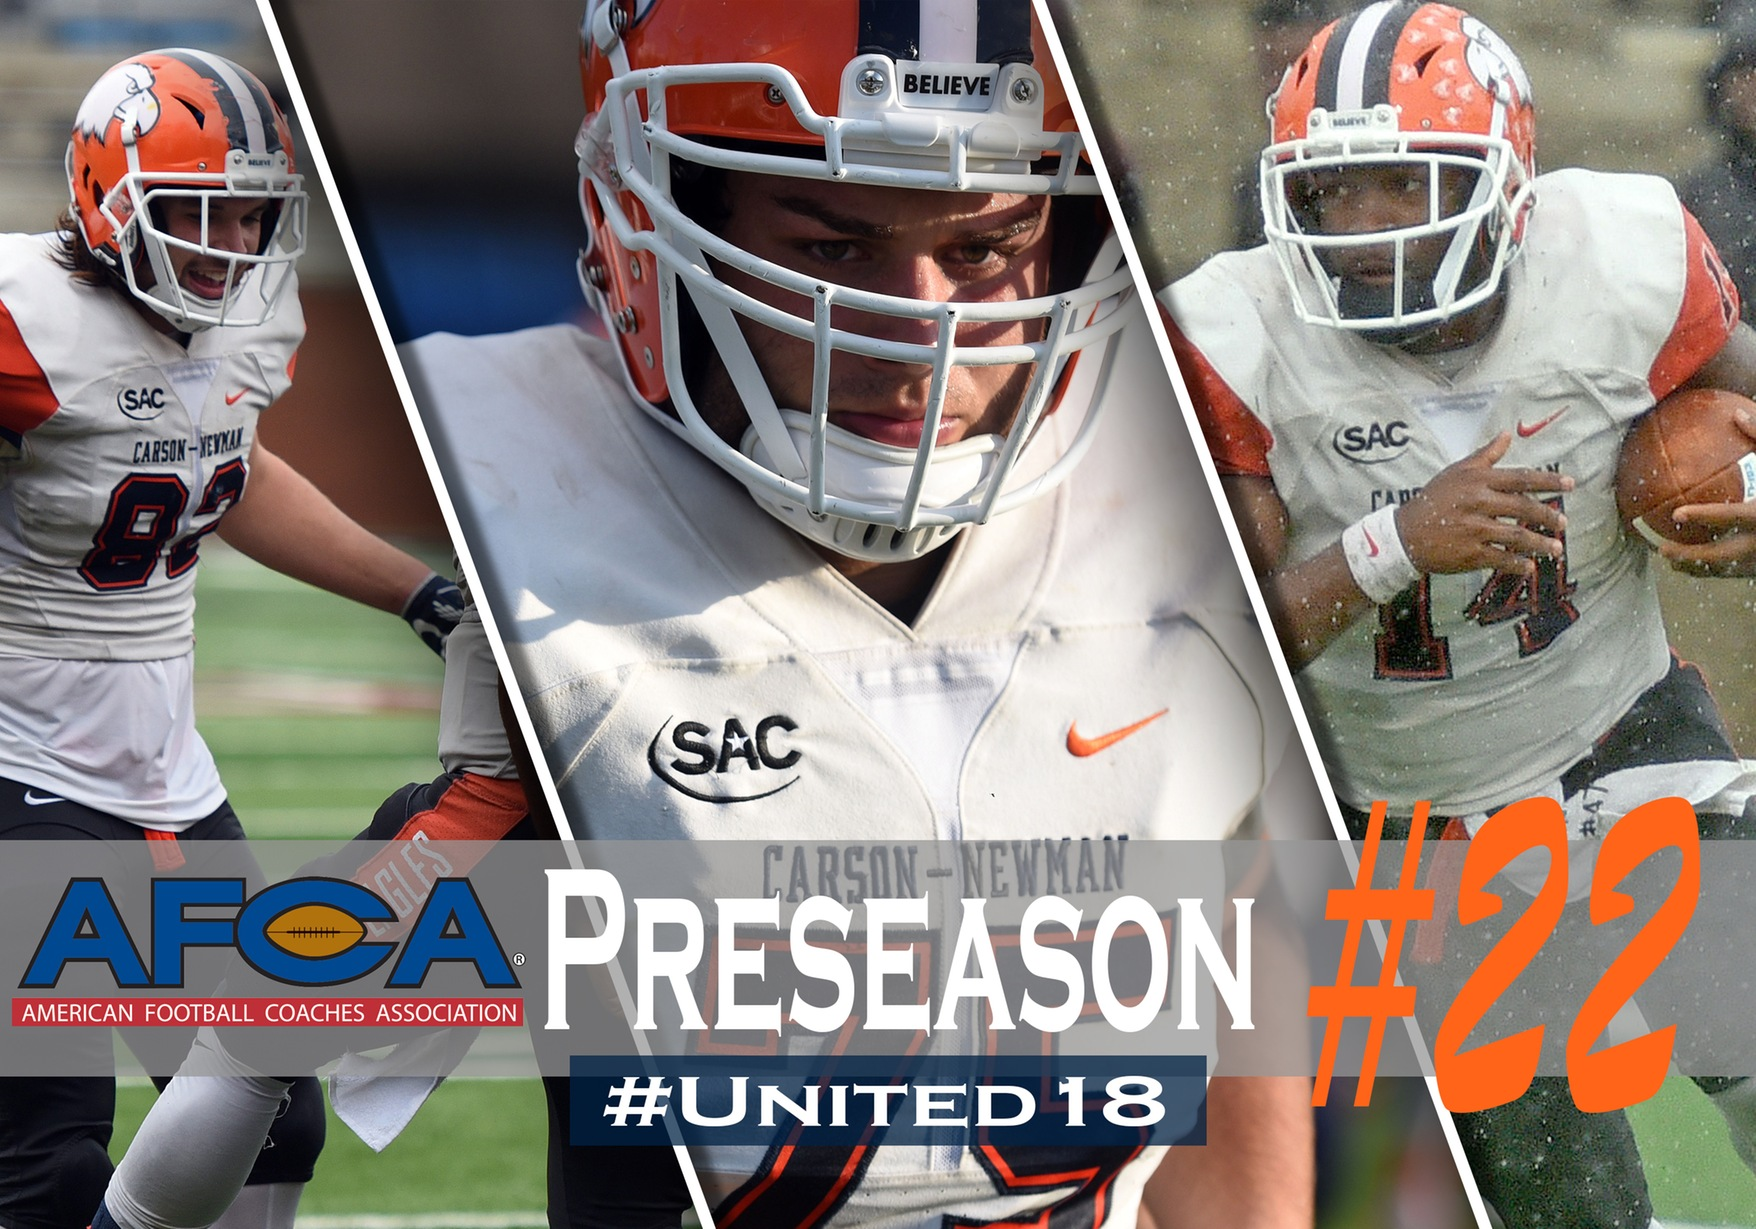 Eagles garner top-25 preseason ranking from AFCA